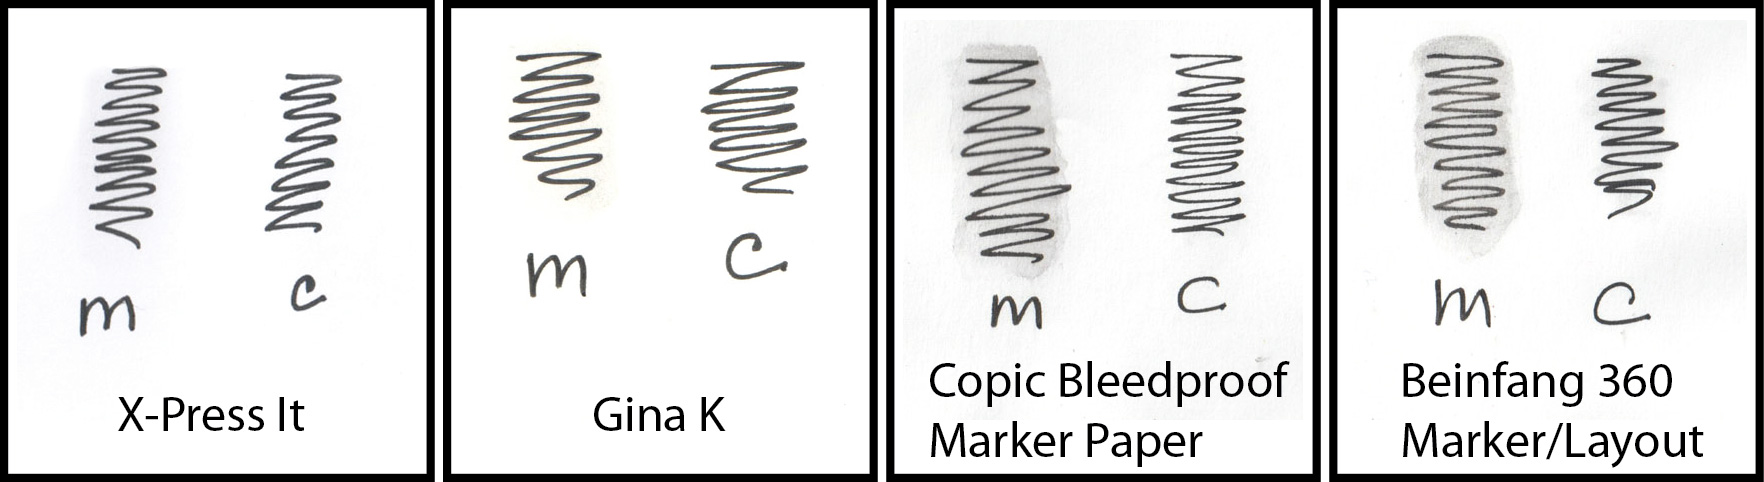 Multiliner vs Micron inks- Compatibility tests for colorers   VanillaArts.com